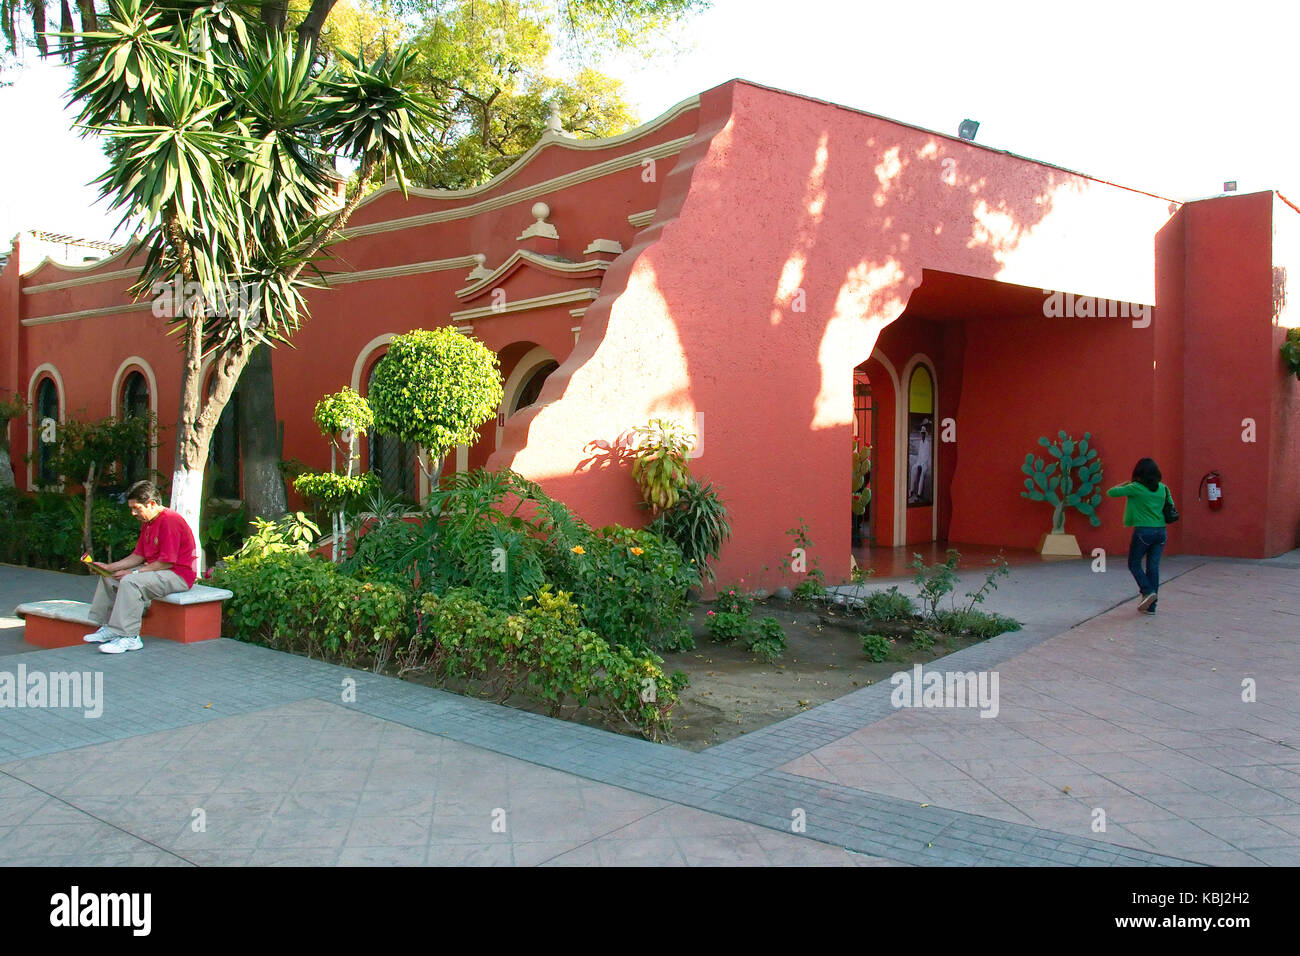 Coyoacan, Mexico, Mexique - 2017 : Musée national des cultures populaires (Musée national des cultures Photo Stock